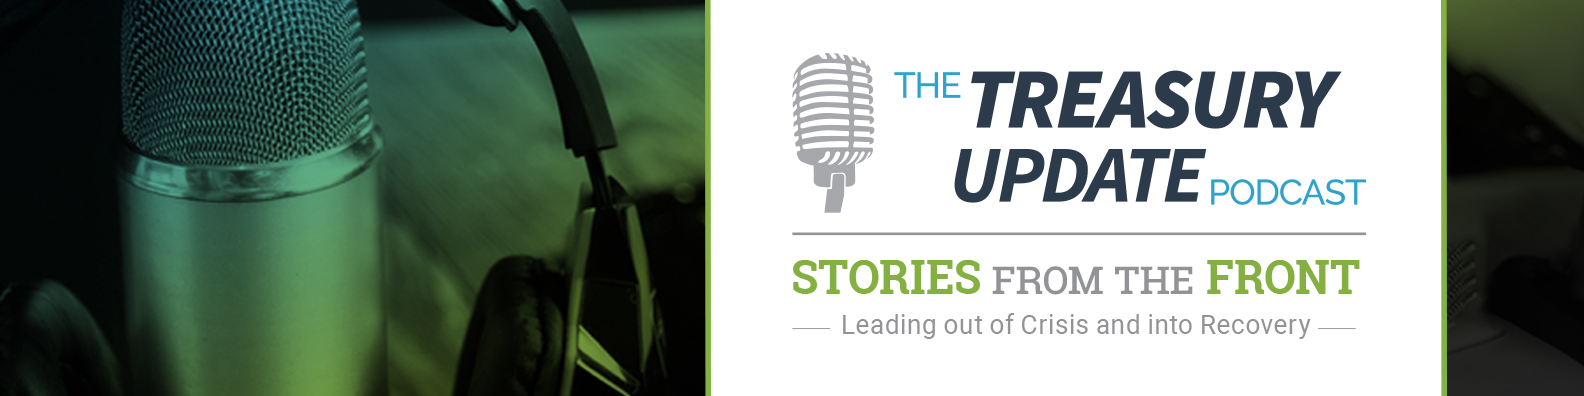 Stories from the Front - A Treasury Update Podcast Series